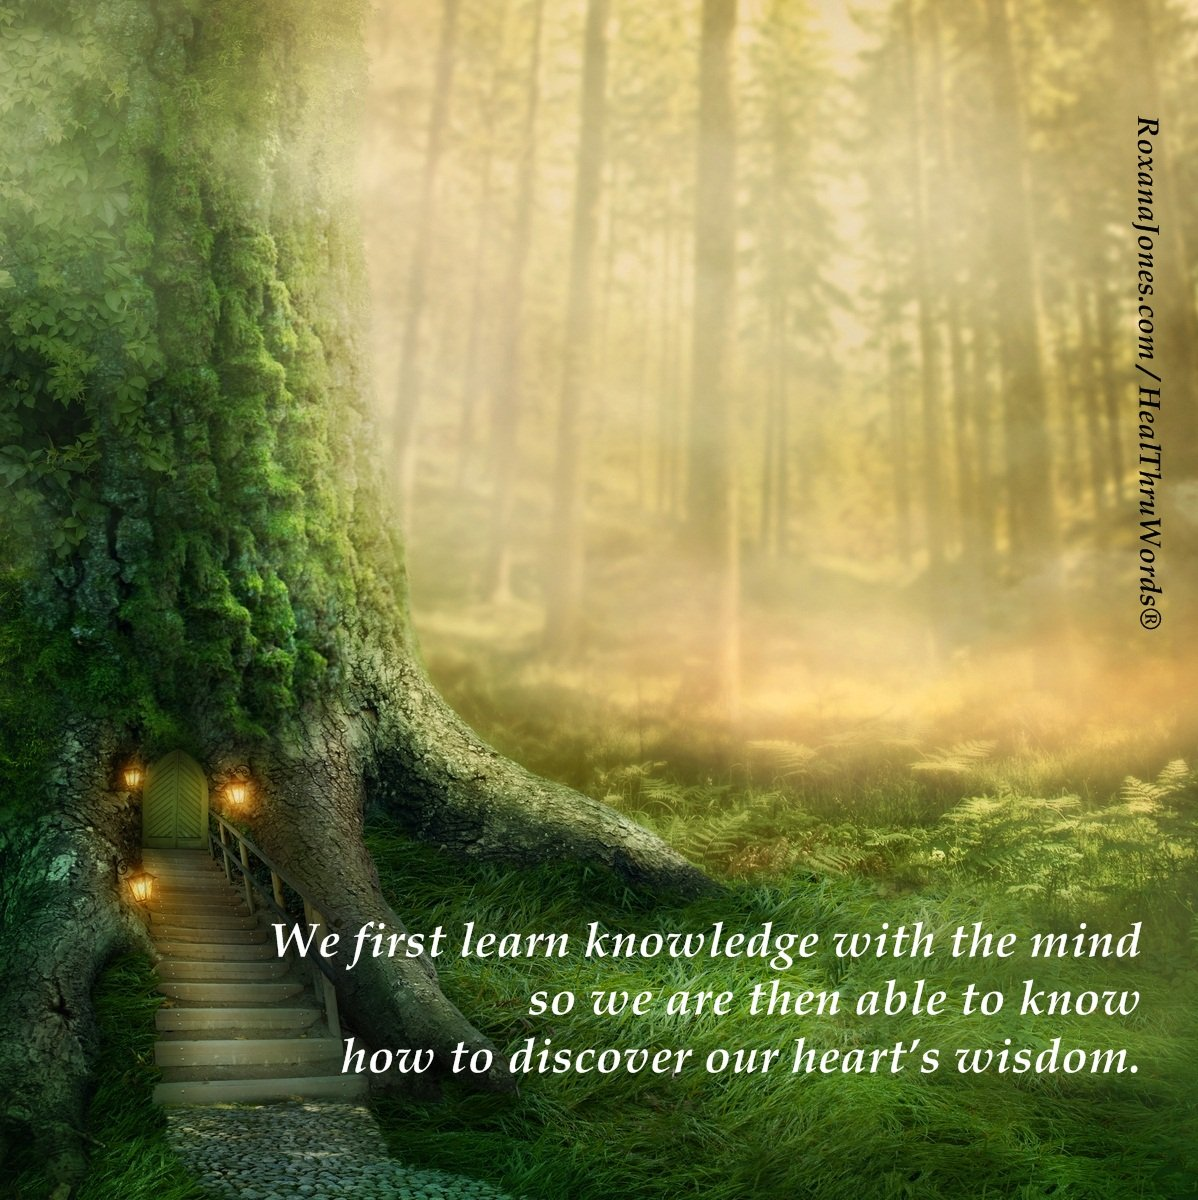 Inspirational Image: Knowing Wisdom